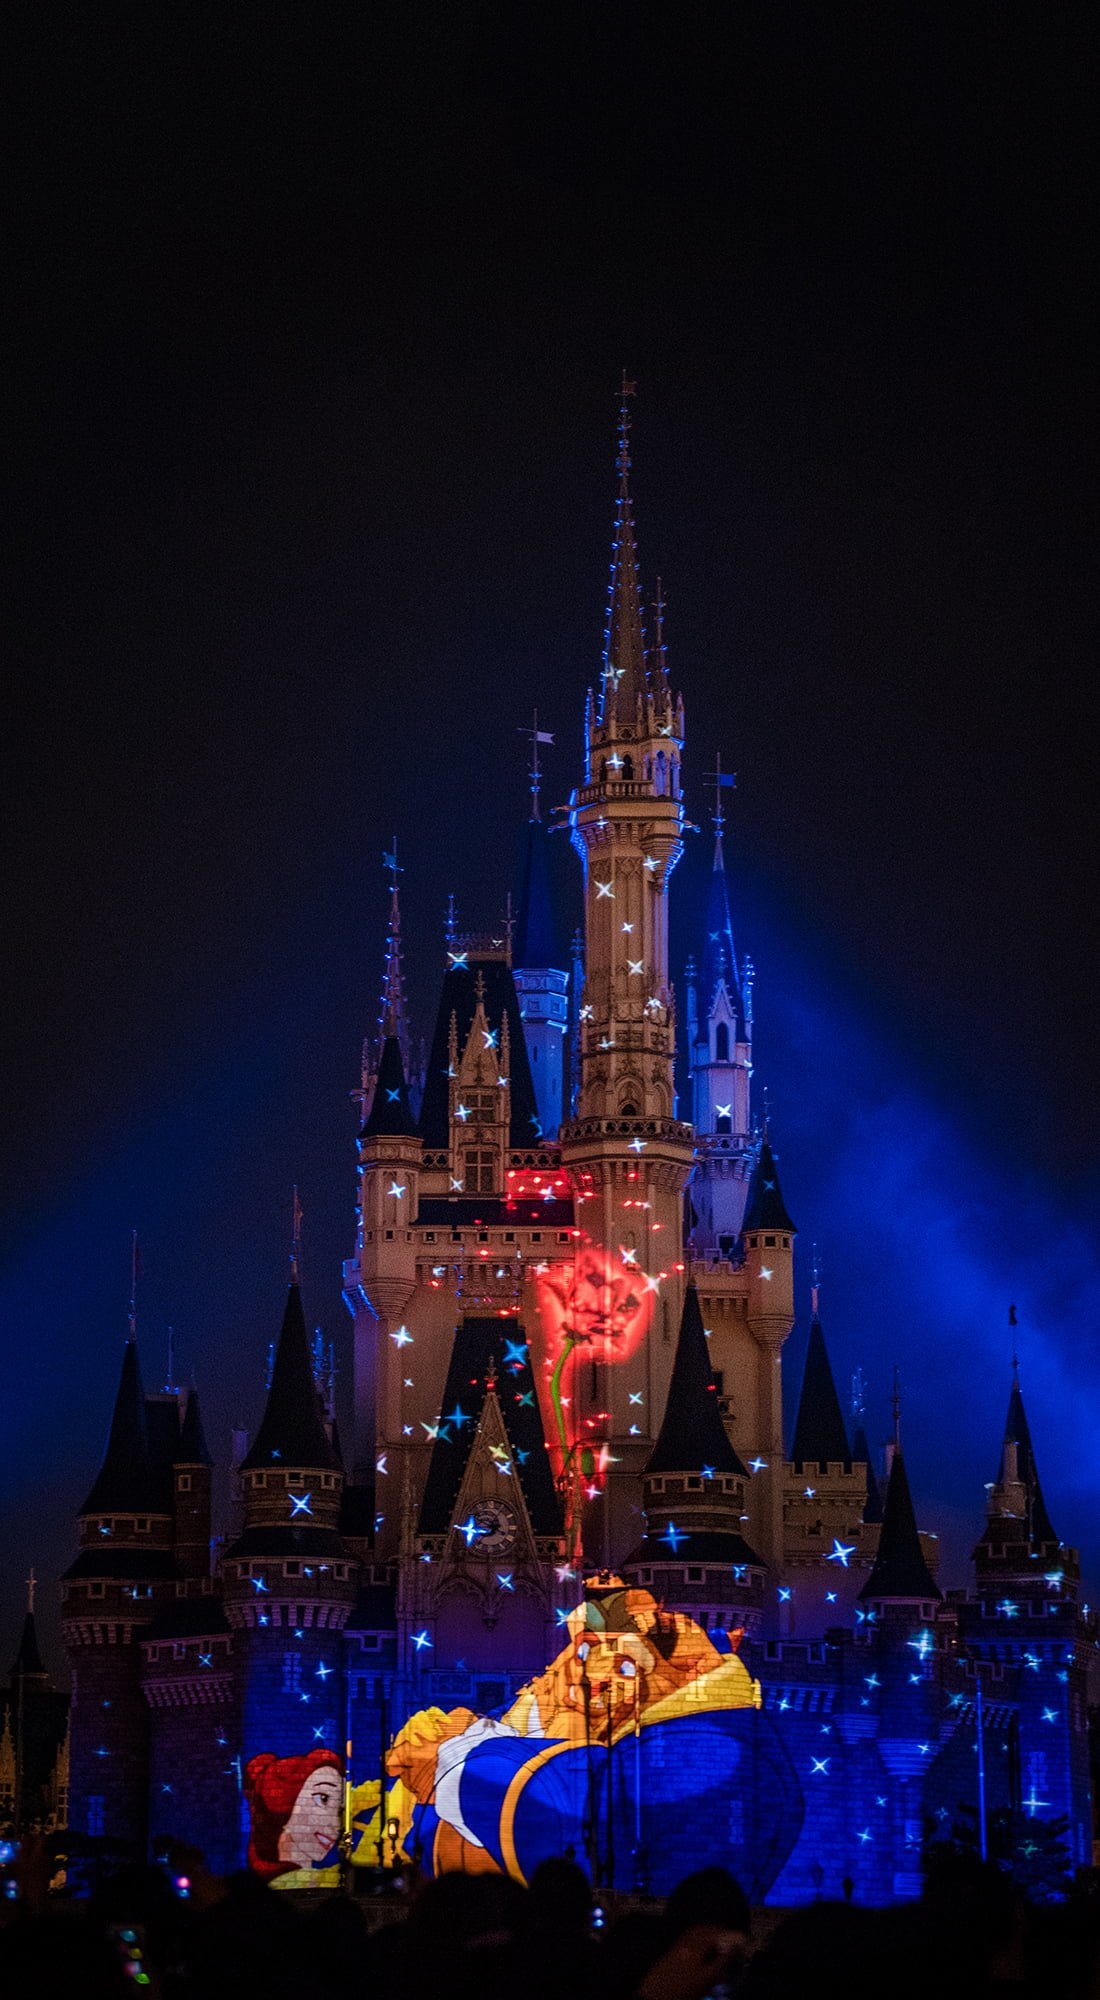 Disney Tourist Blog Hong Kong 39;happily Ever After 39; Replacing Wishes Fireworks At Magic